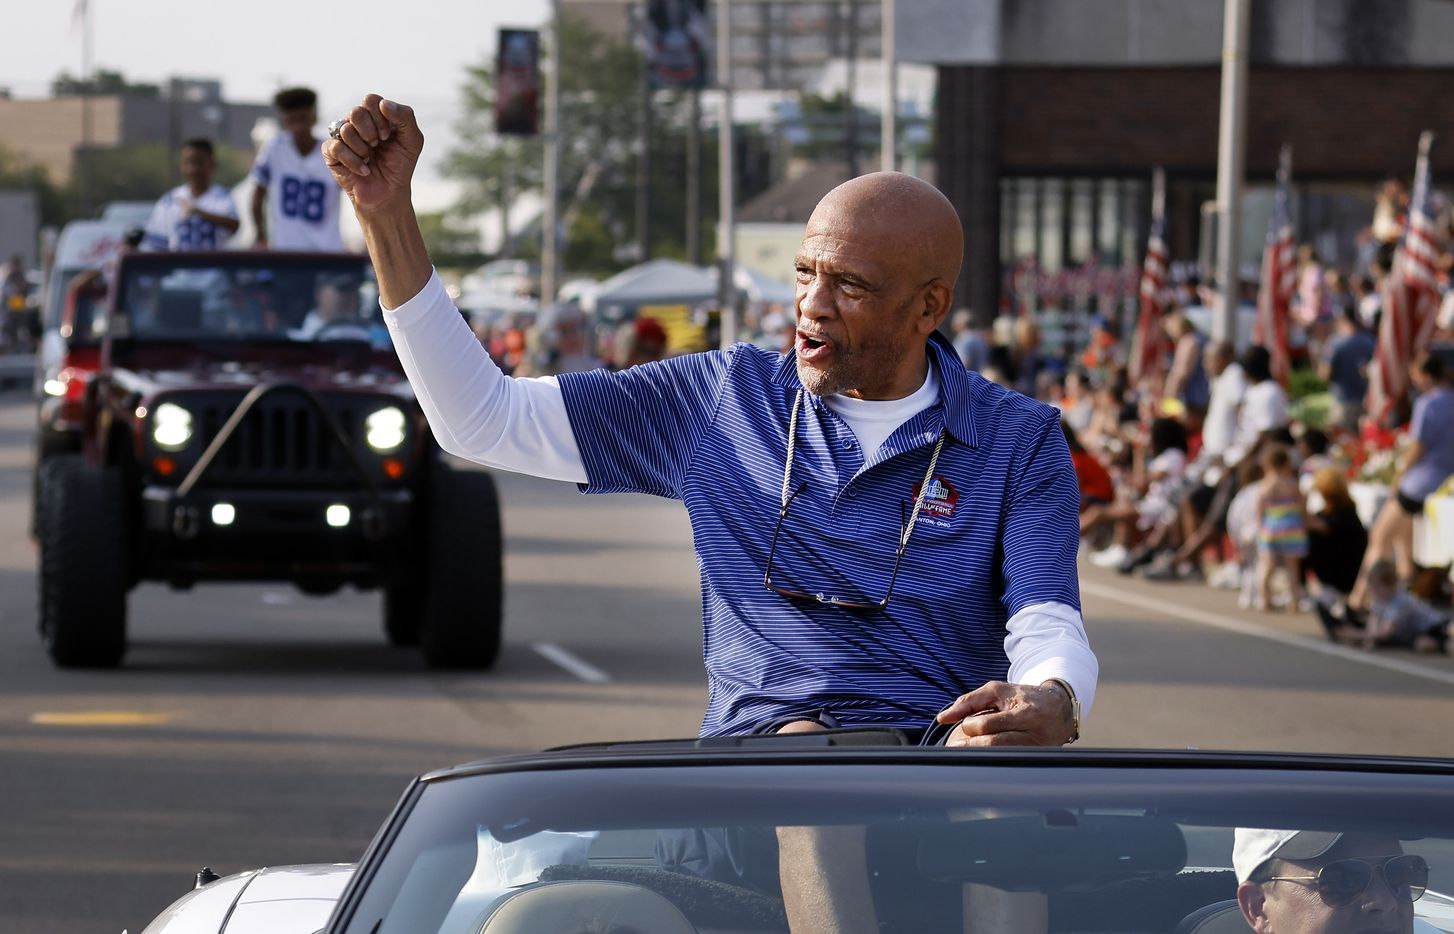 Dallas Cowboys Pro Football Hall of Fame inductee Drew Pearson fires up the fans along the Canton Repository Grand Parade route in downtown Canton, Ohio, Saturday, August 7, 2021. Family members of his rode behind him in the parade honoring newly elected and former members of the Hall, including newcomers and former Dallas Cowboys players Cliff Harris, Drew Pearson and head coach Jimmy Johnson. (Tom Fox/The Dallas Morning News)